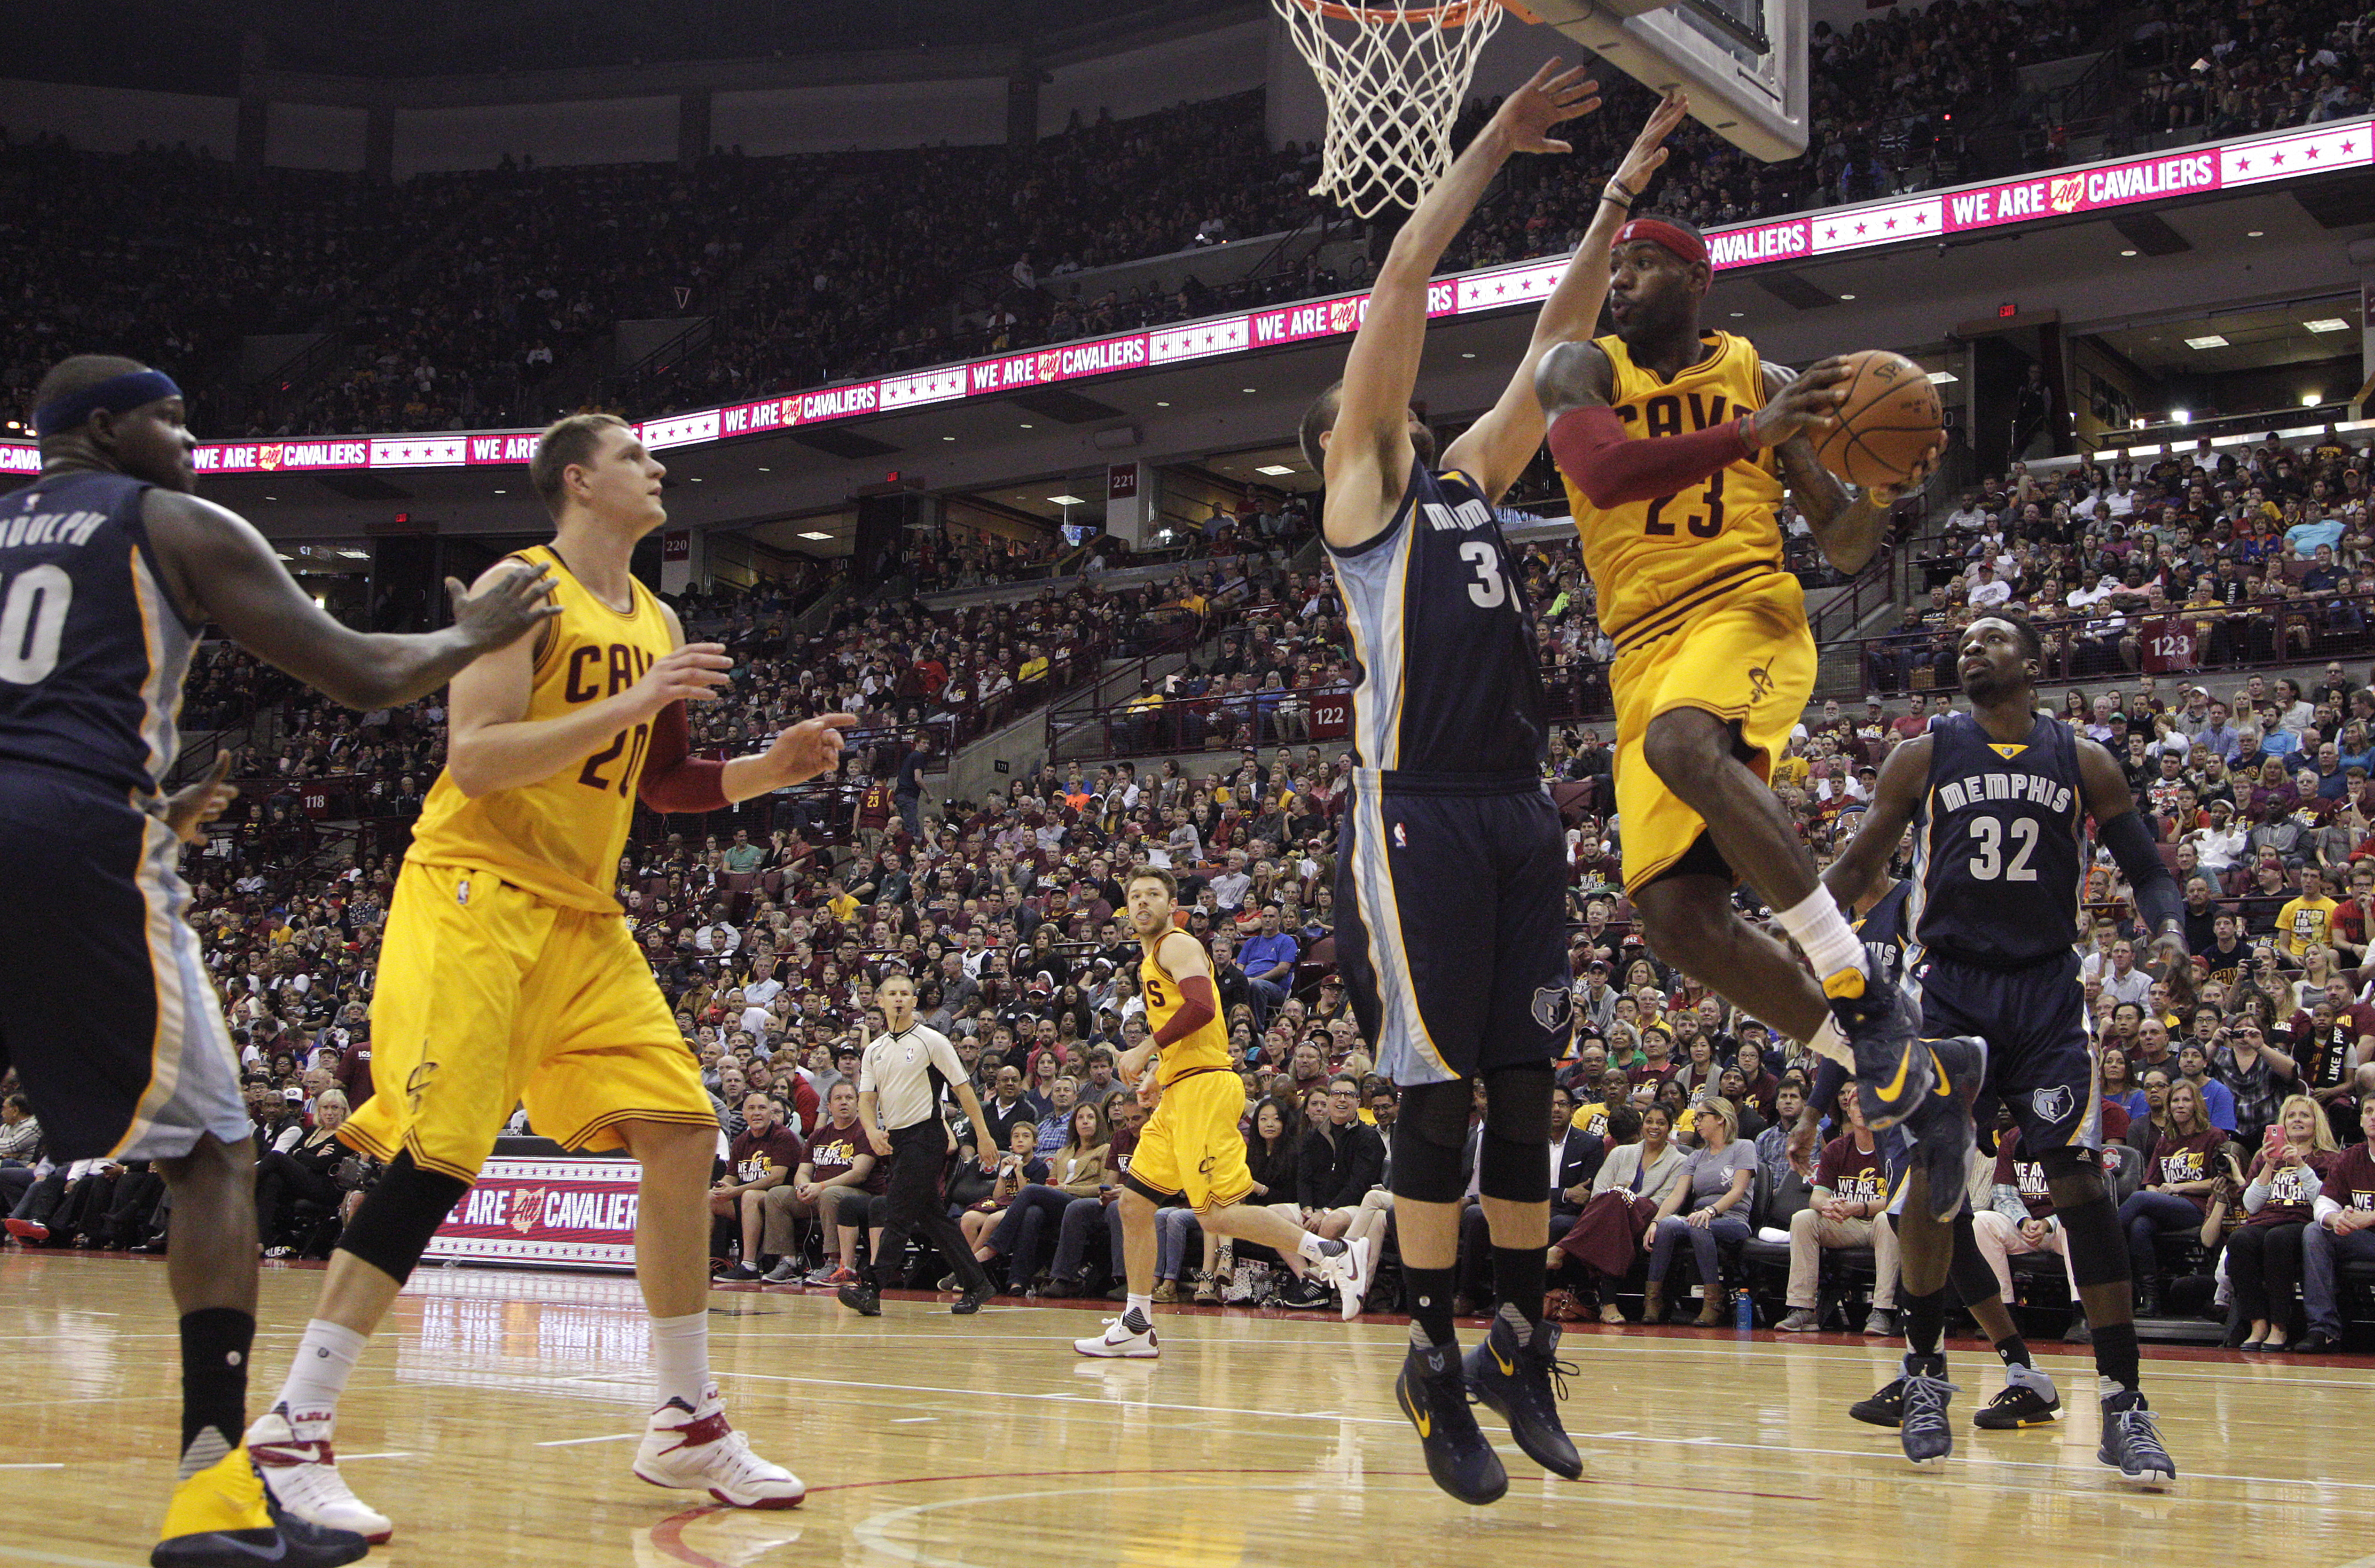 Cleveland Cavaliers' LeBron James (23) drives to the basket between Memphis Grizzlies' Jeff Green, right, and Marc Gasol, of Spain, during the second quarter of an NBA preseason basketball game Monday, Oct. 12, 2015, in Columbus, Ohio. (AP Photo/Jay LaPre